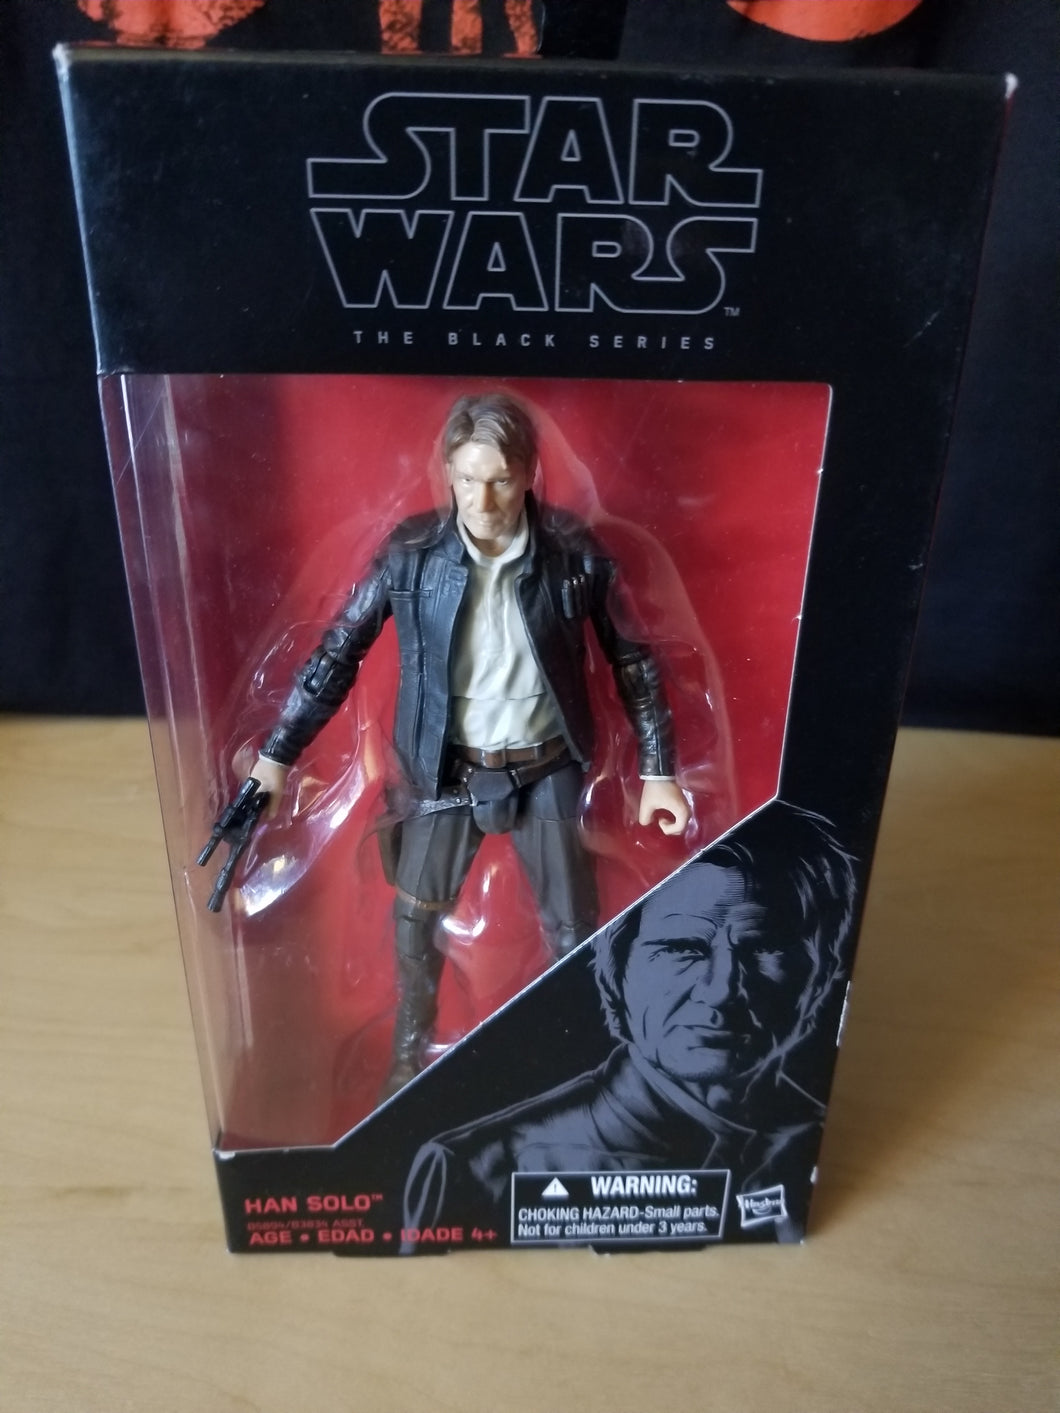 Han Solo #18 - The Black Series (6-inch figure)